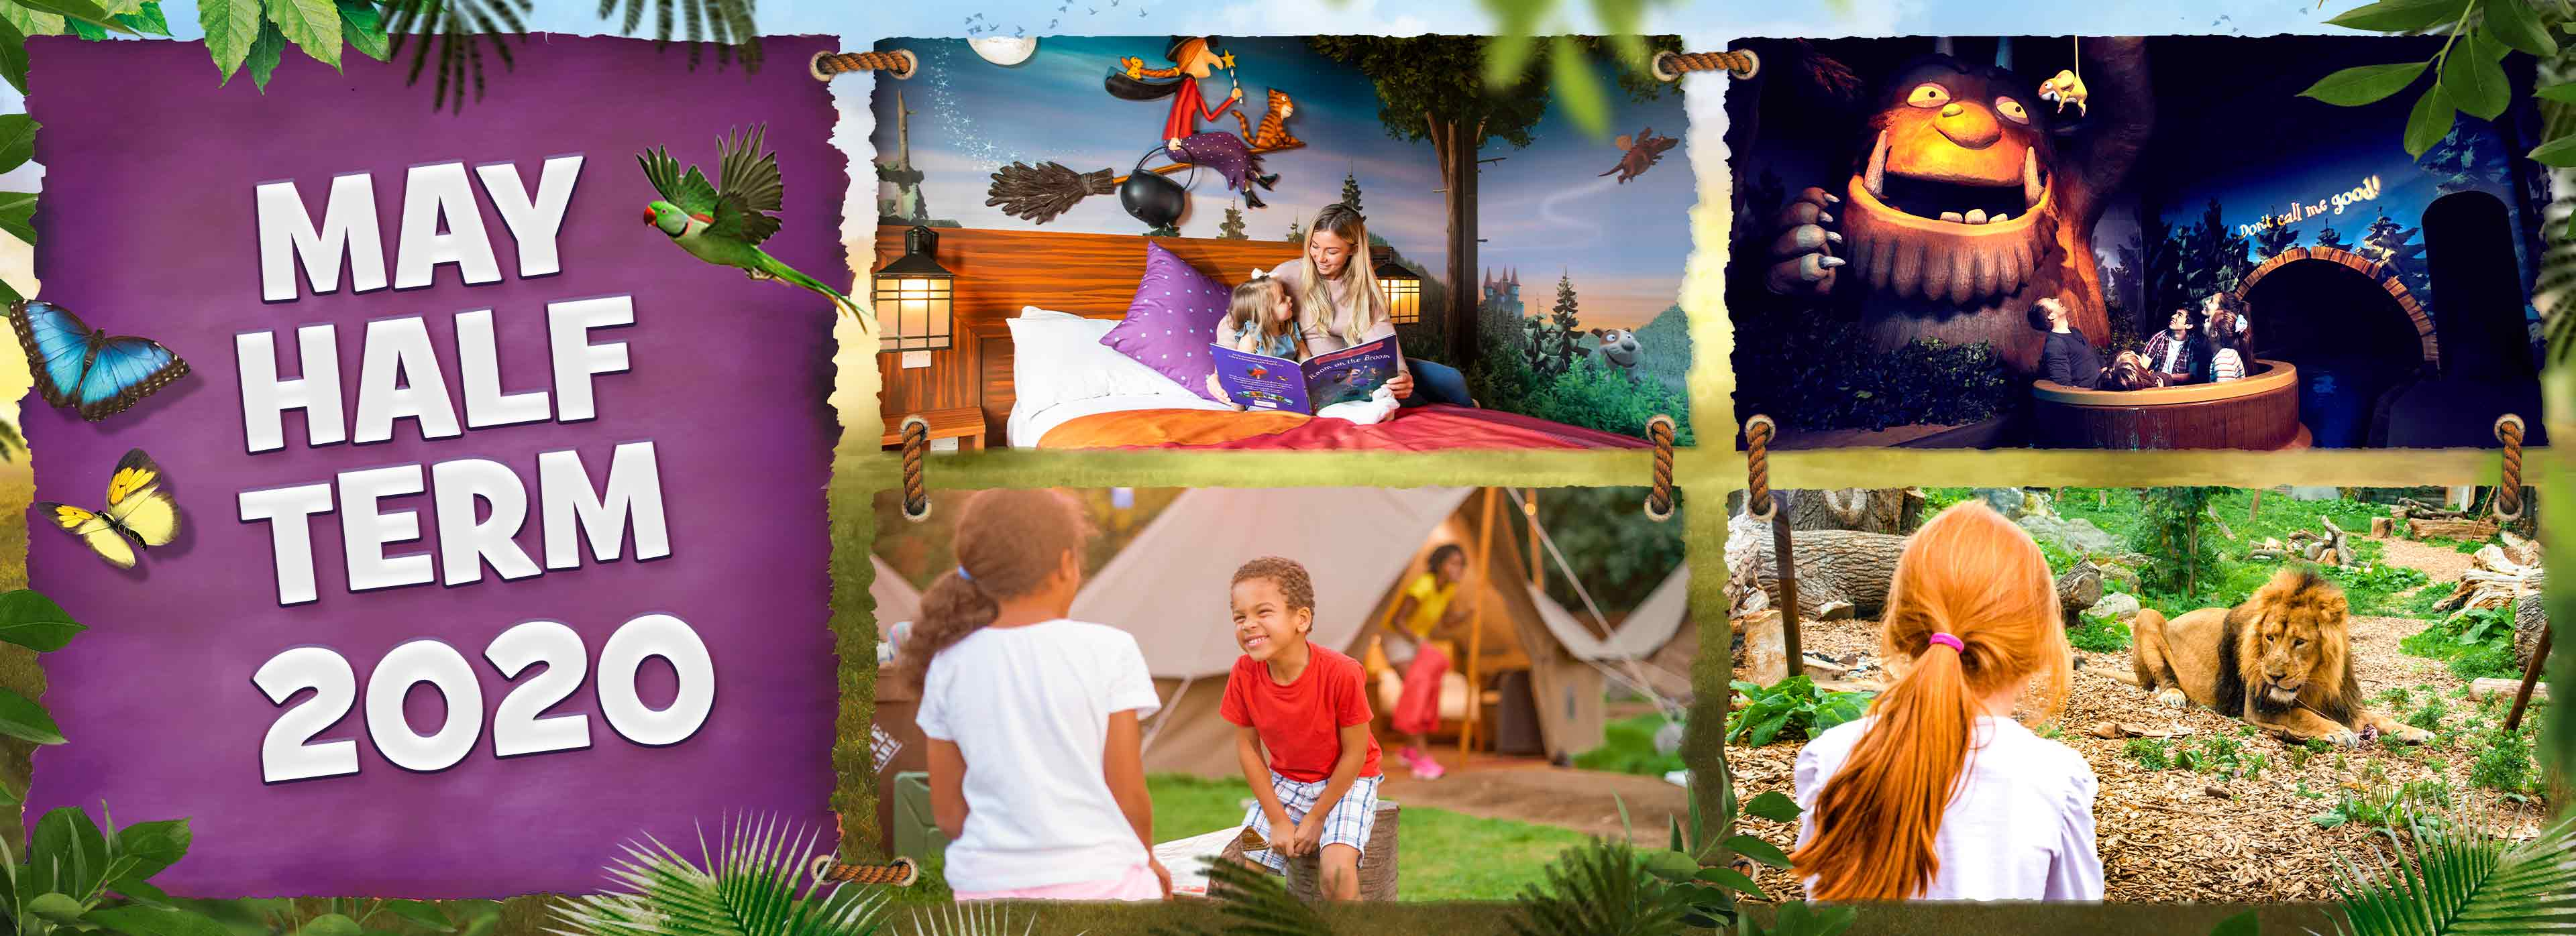 May Half Term 202020 at Chessington World of Adventures Resort